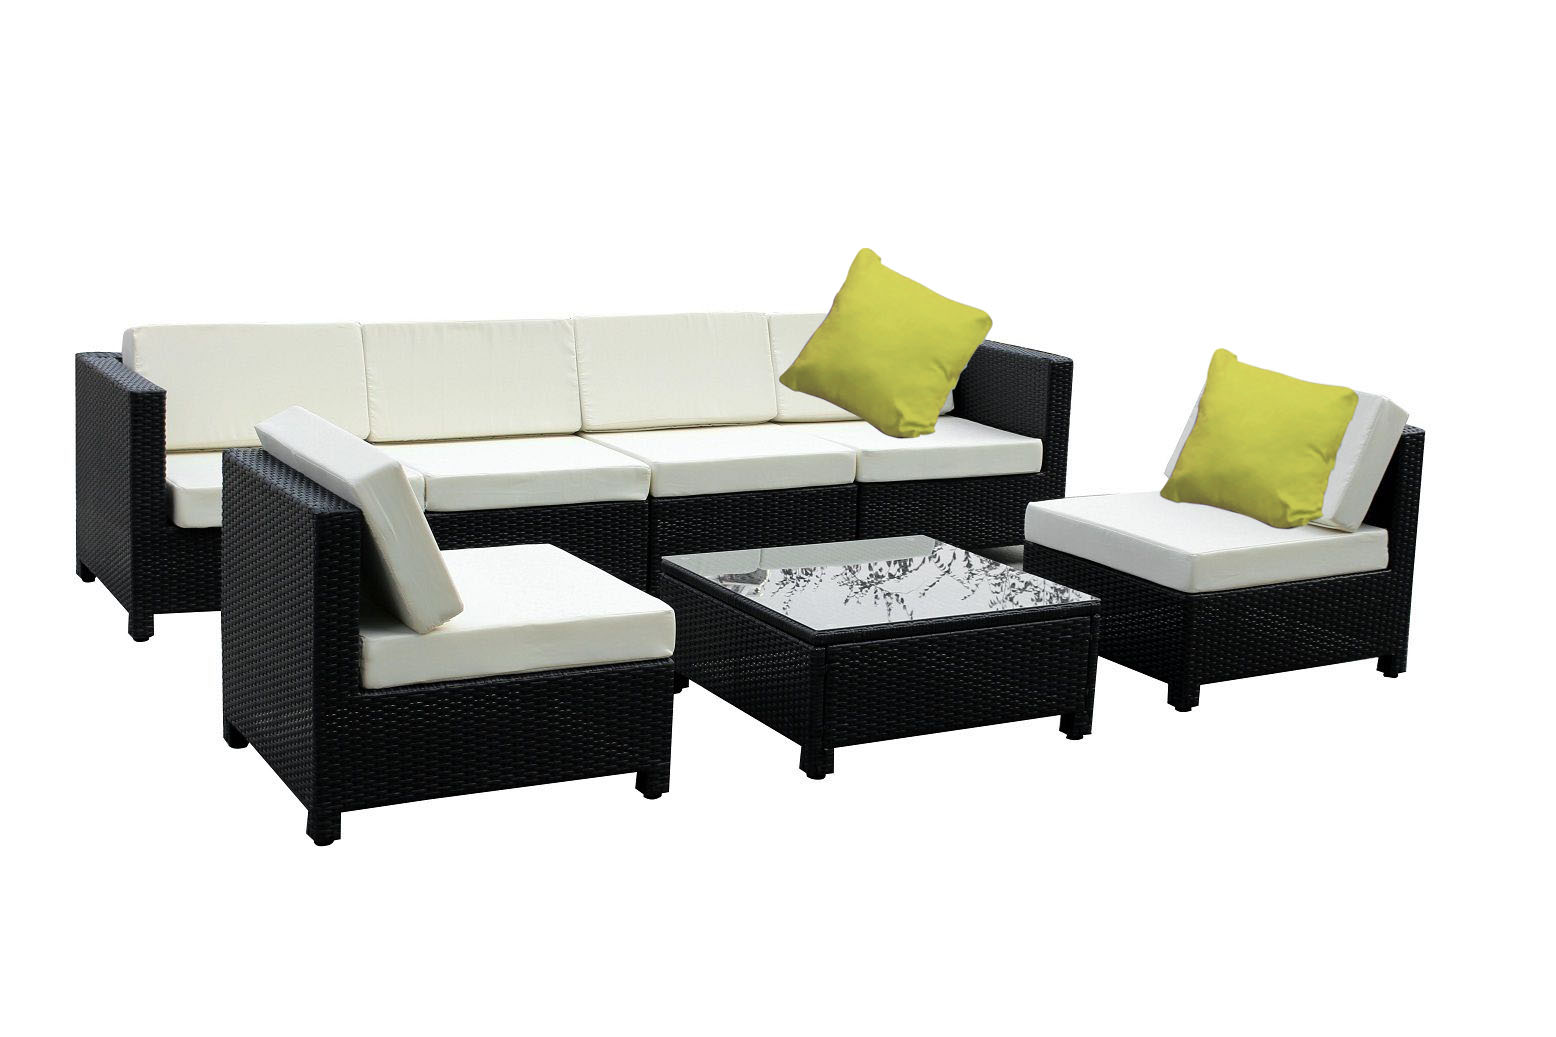 white rattan outdoor sofa fabric types malaysia 7 pc luxury wicker patio sectional indoor